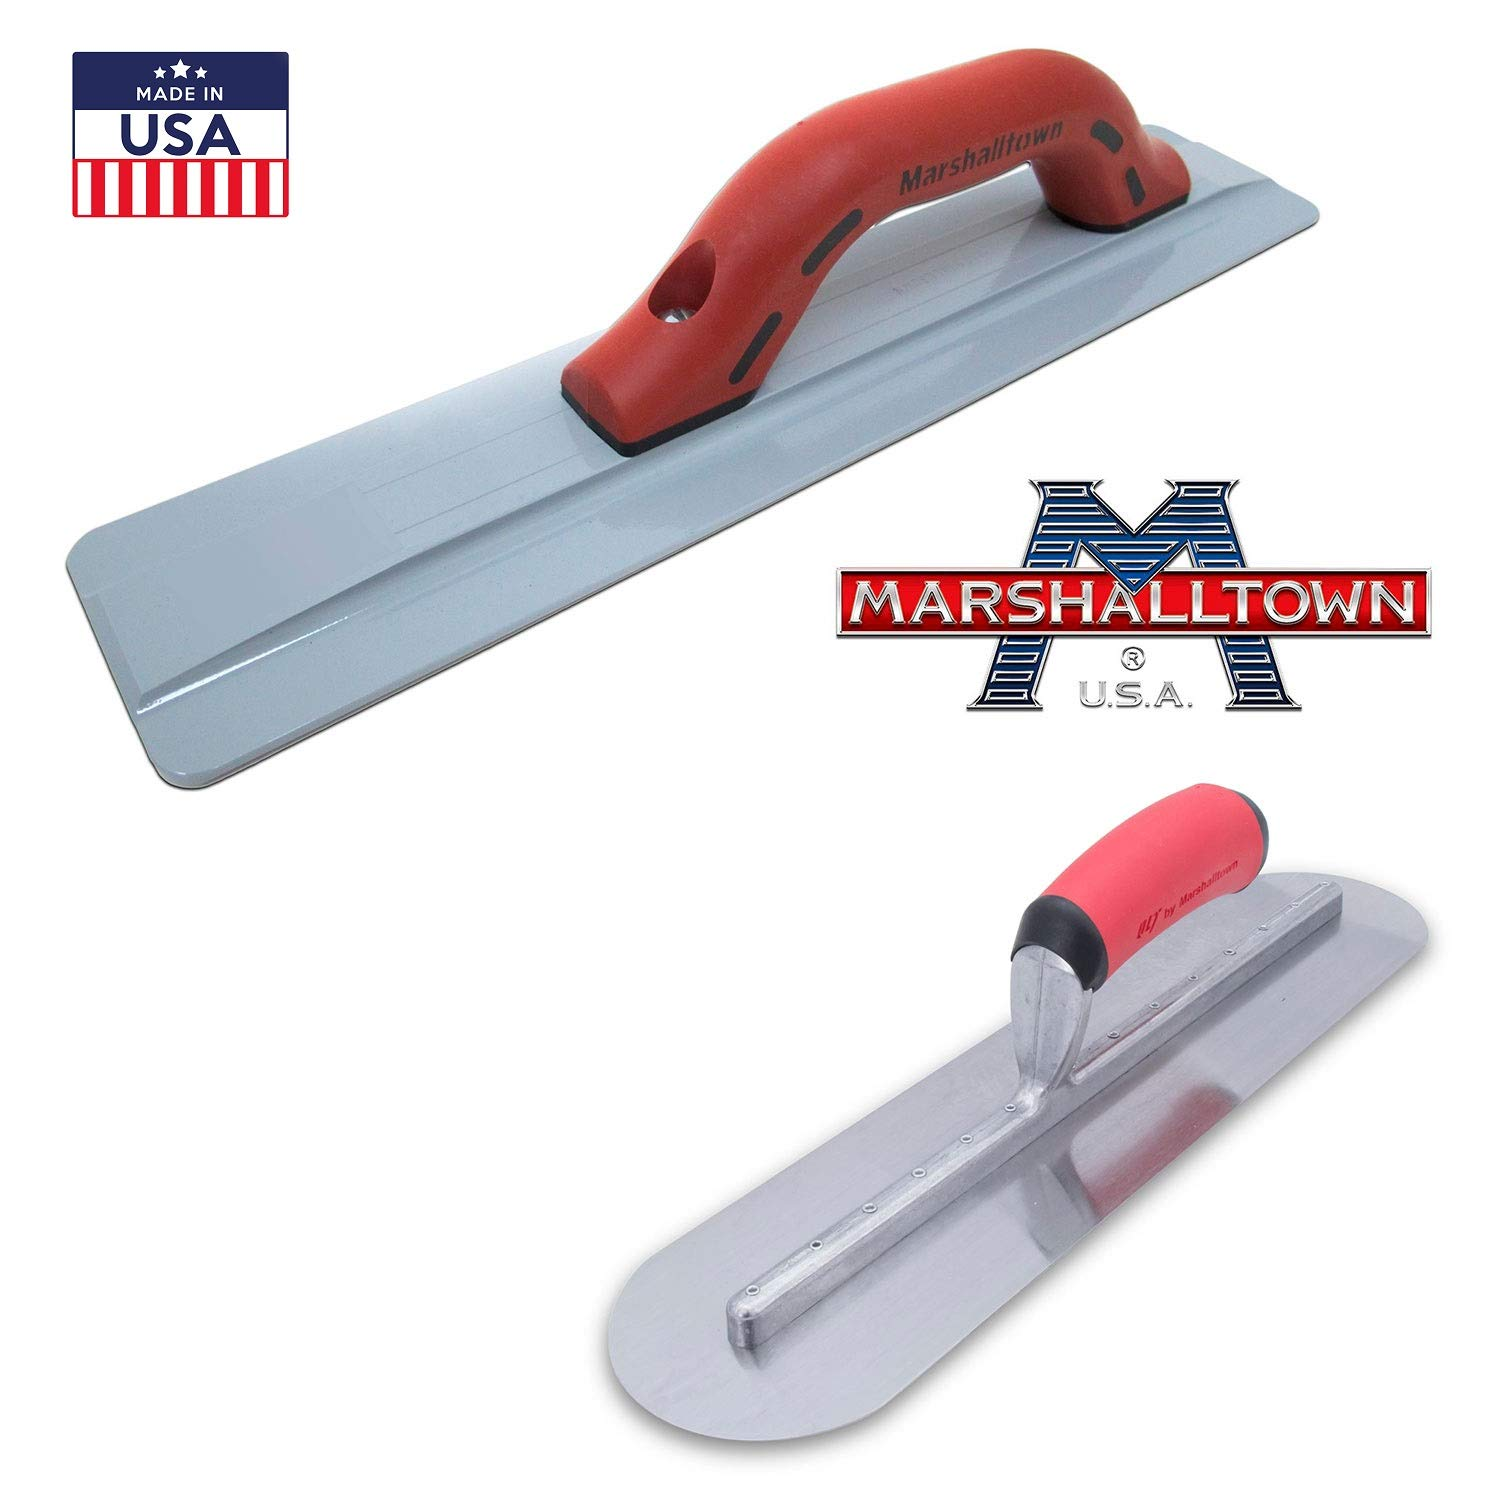 Marshalltown Concrete Finishing Tools - Magnesium Hand Float 18''x3'' 1/8 pair up with a 16''x4'' fully Rounded Finishing Trowel by The Quasar Concrete